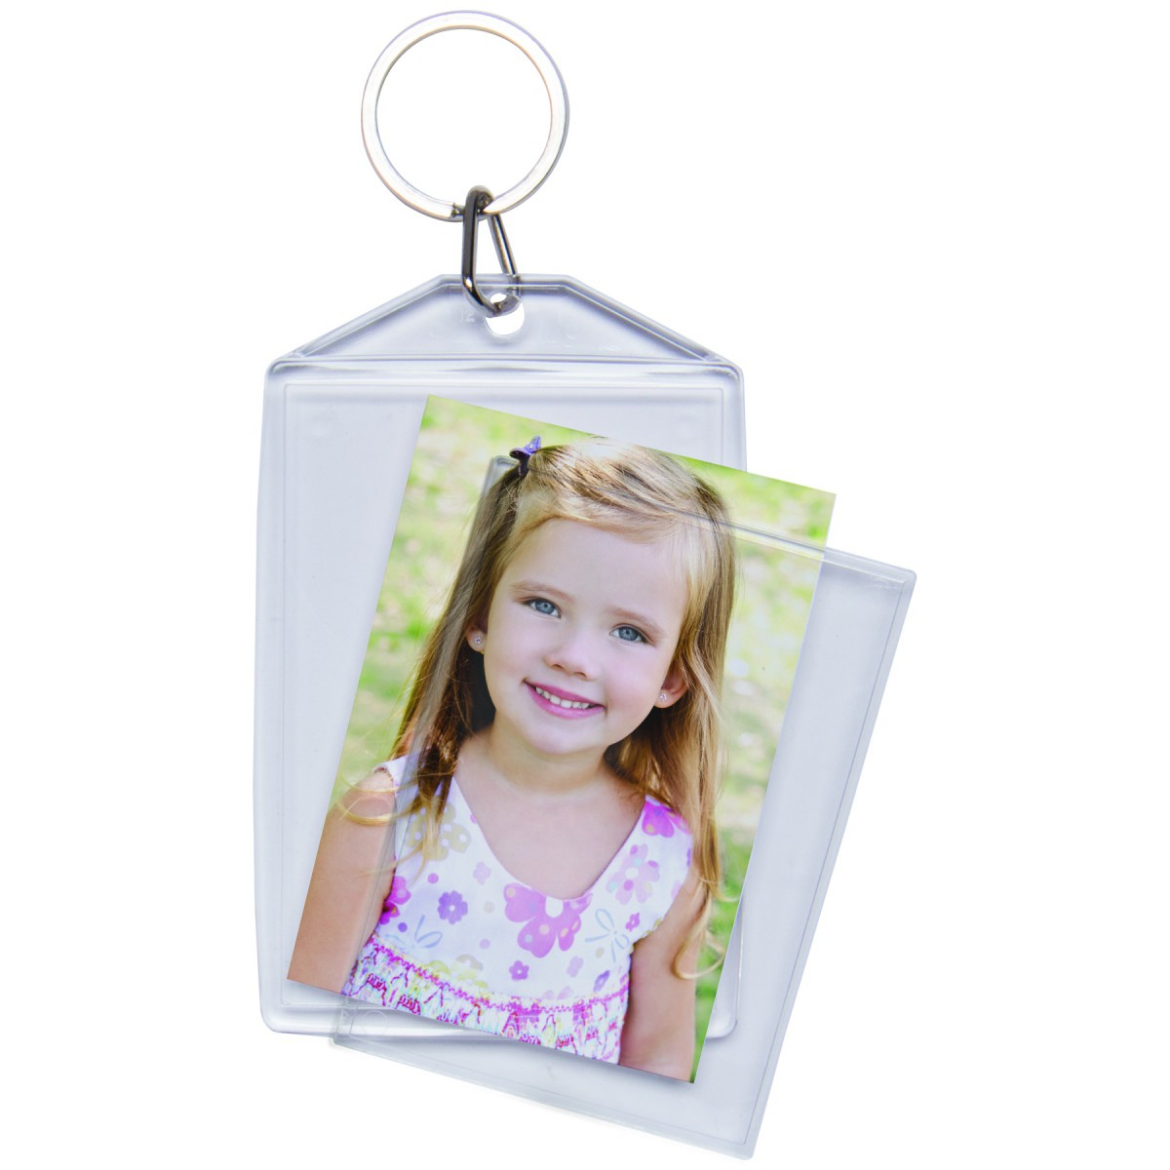 Keychains - Keychains can be added to any photo novelty event.